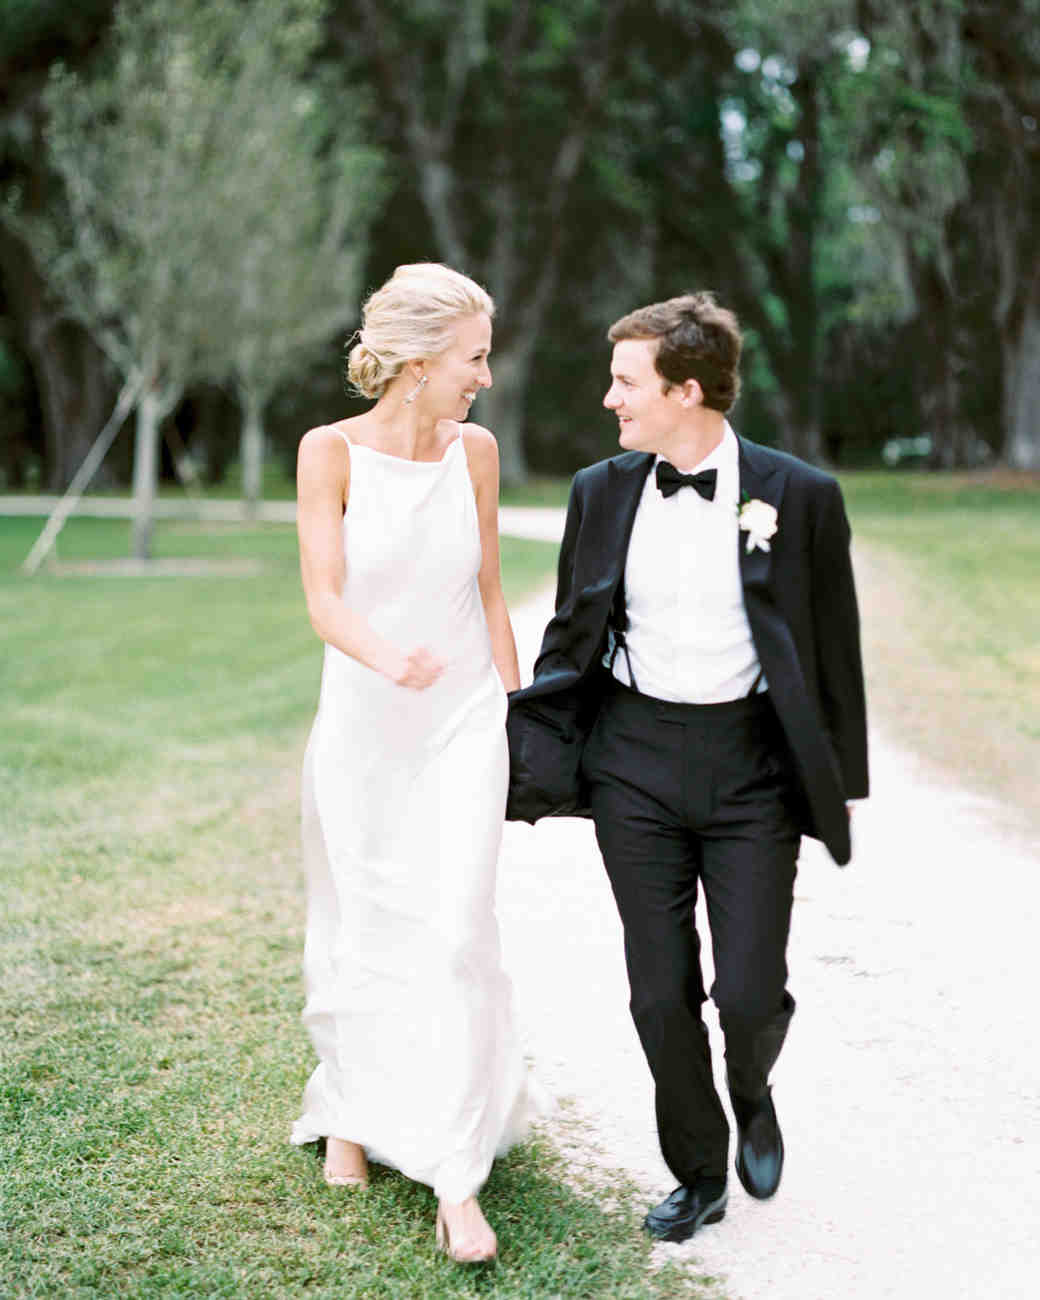 bride and groom smile at each other outside on pathway